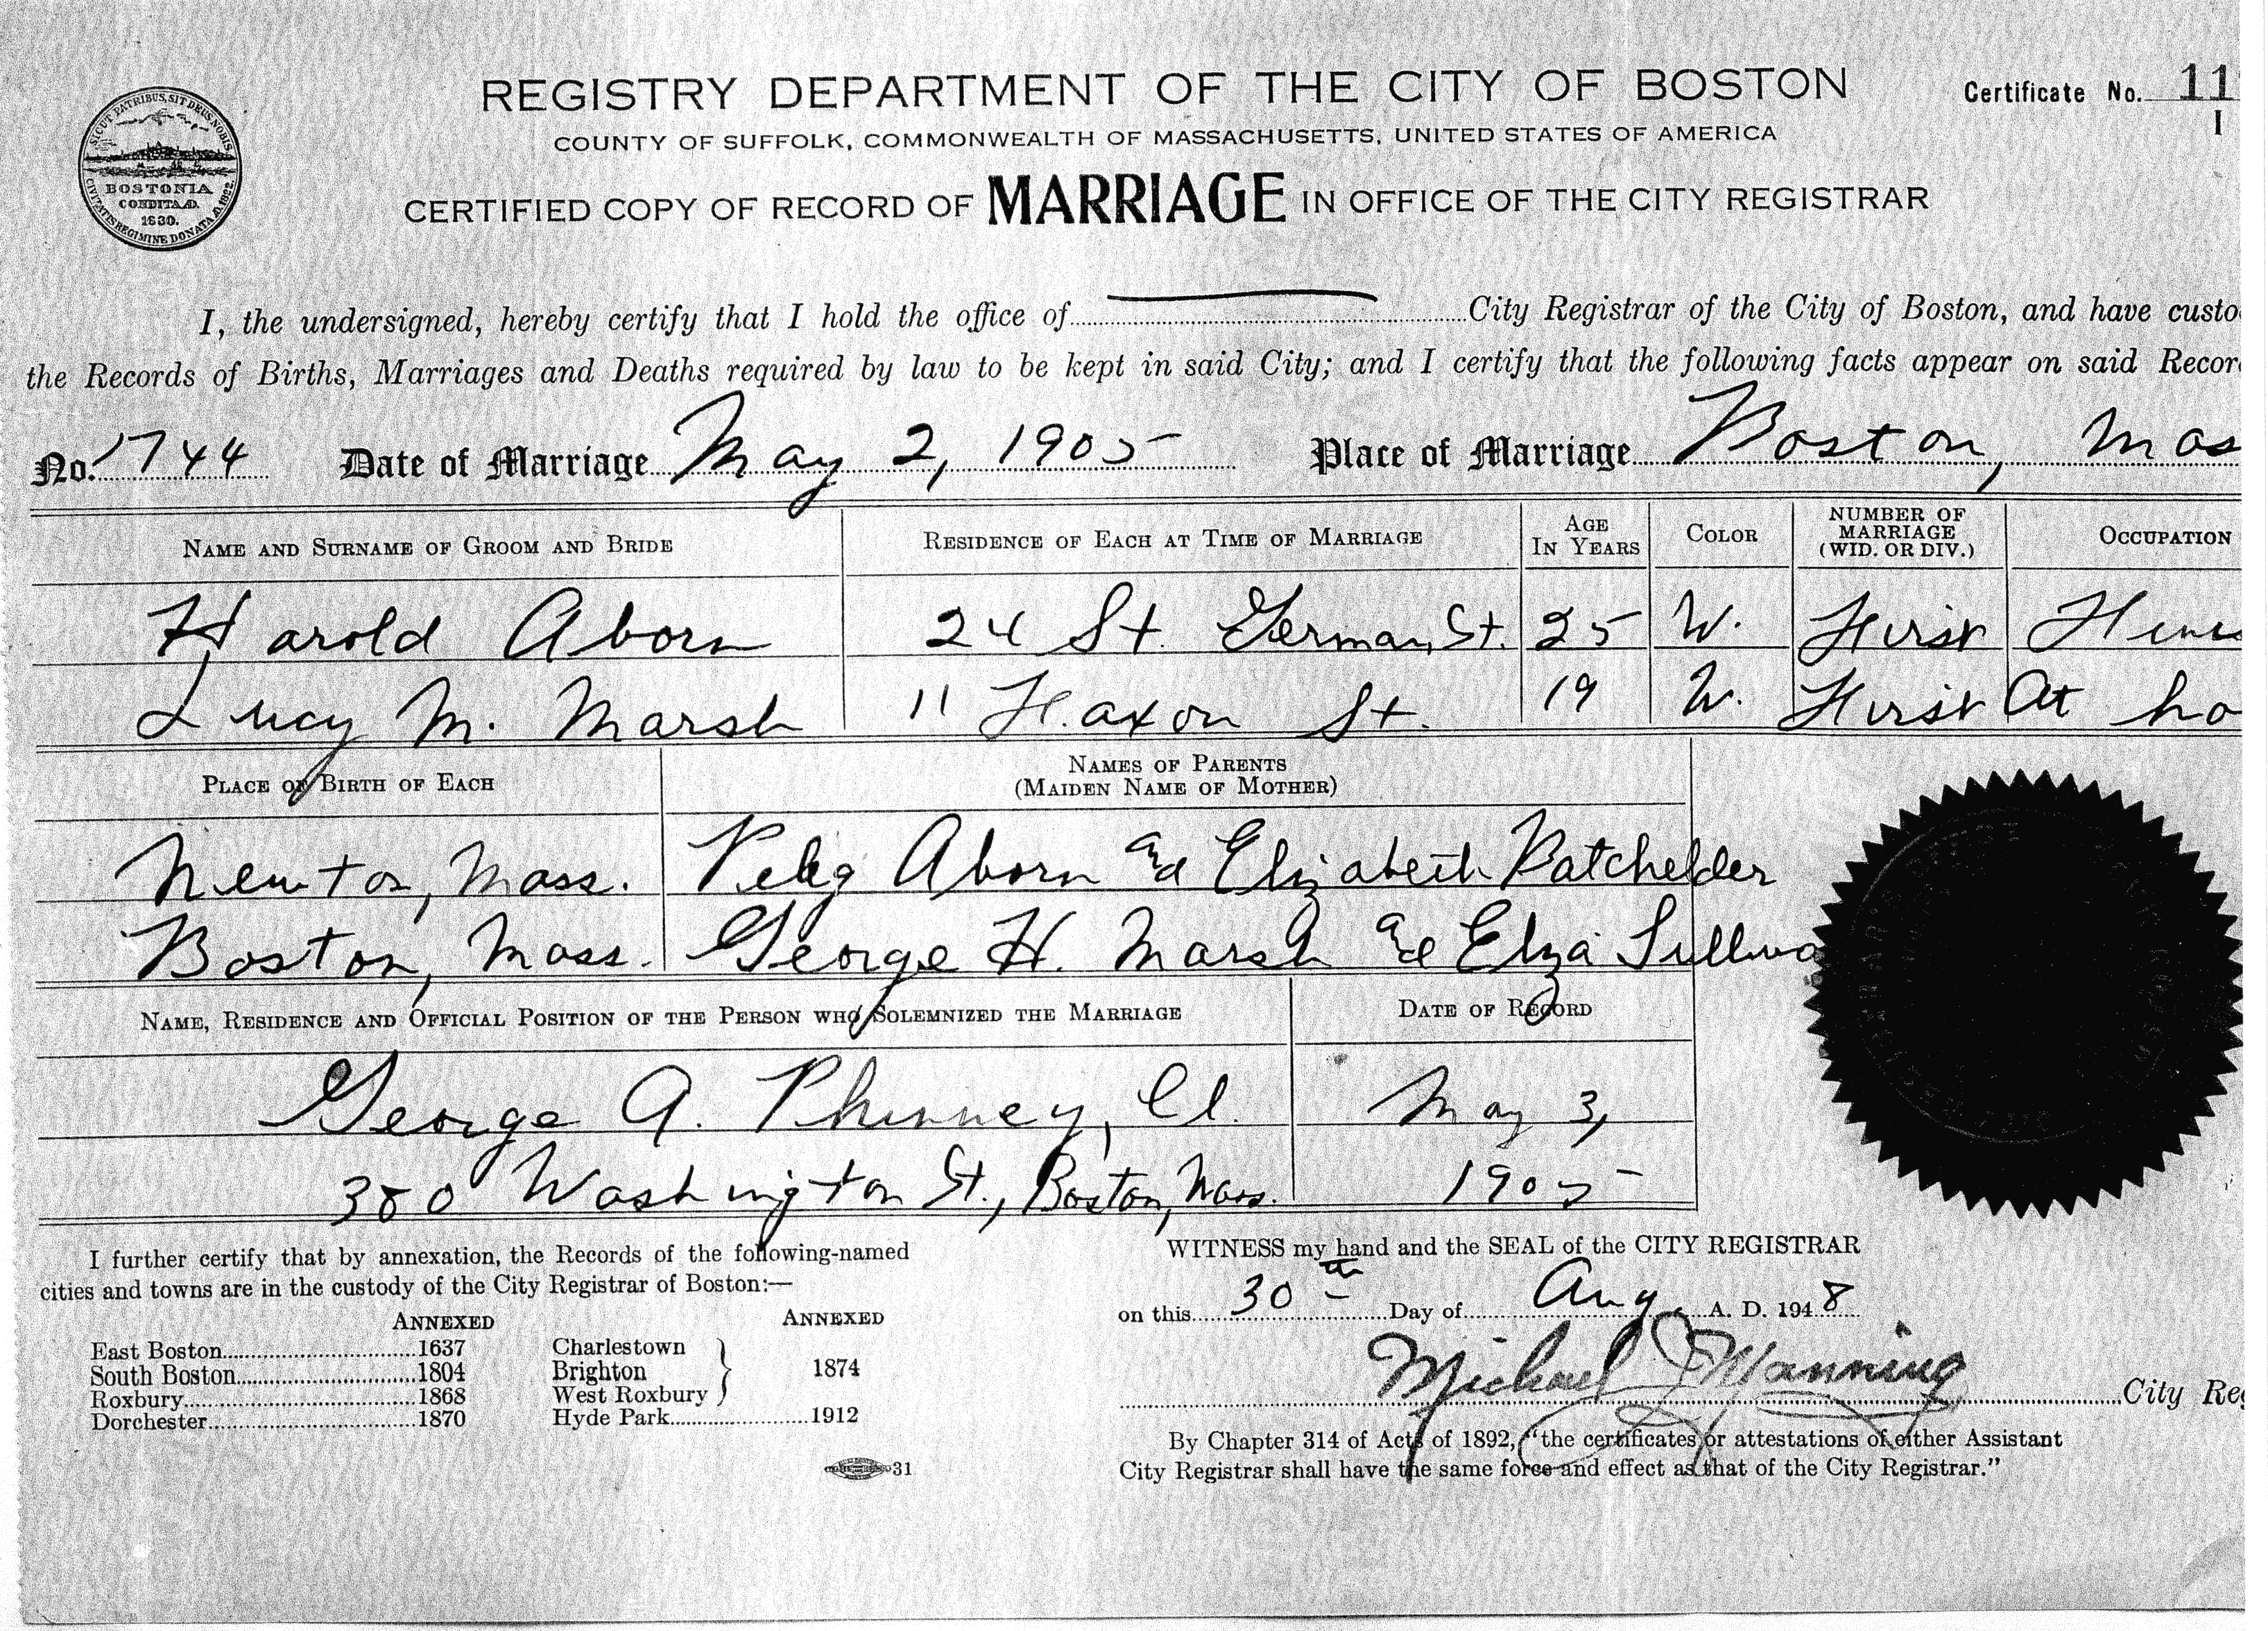 Harold keith aborn 1880 1951 1905 may 2 harold aborn and lucy marsh marriage certificate boston ma aiddatafo Image collections